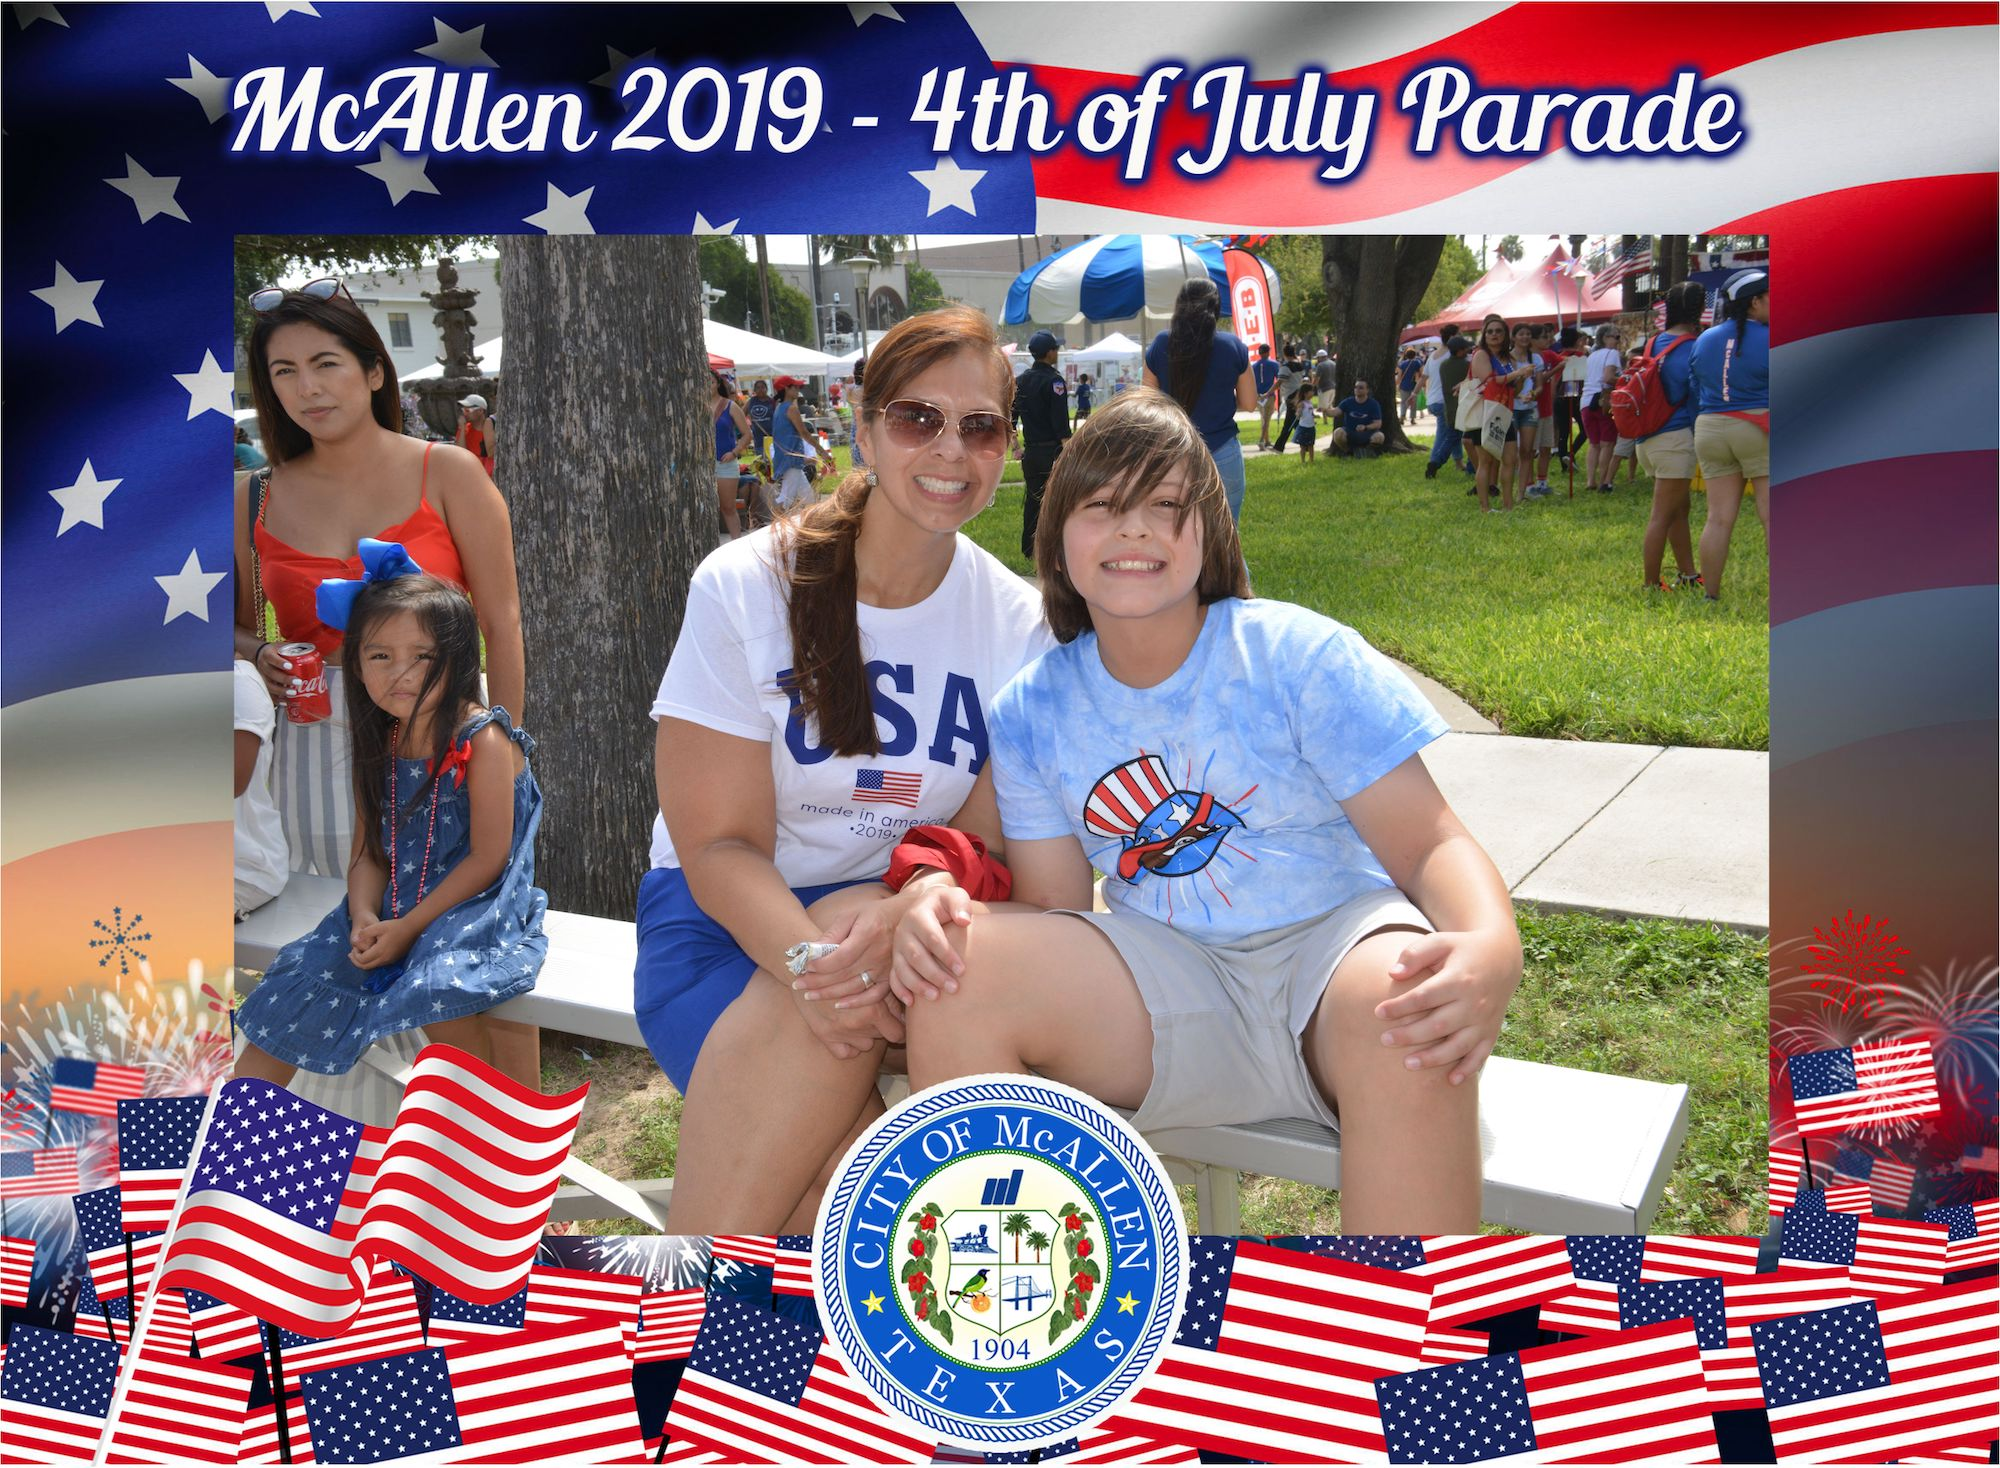 McAllen 4th of July Parade 2019 – Part 4